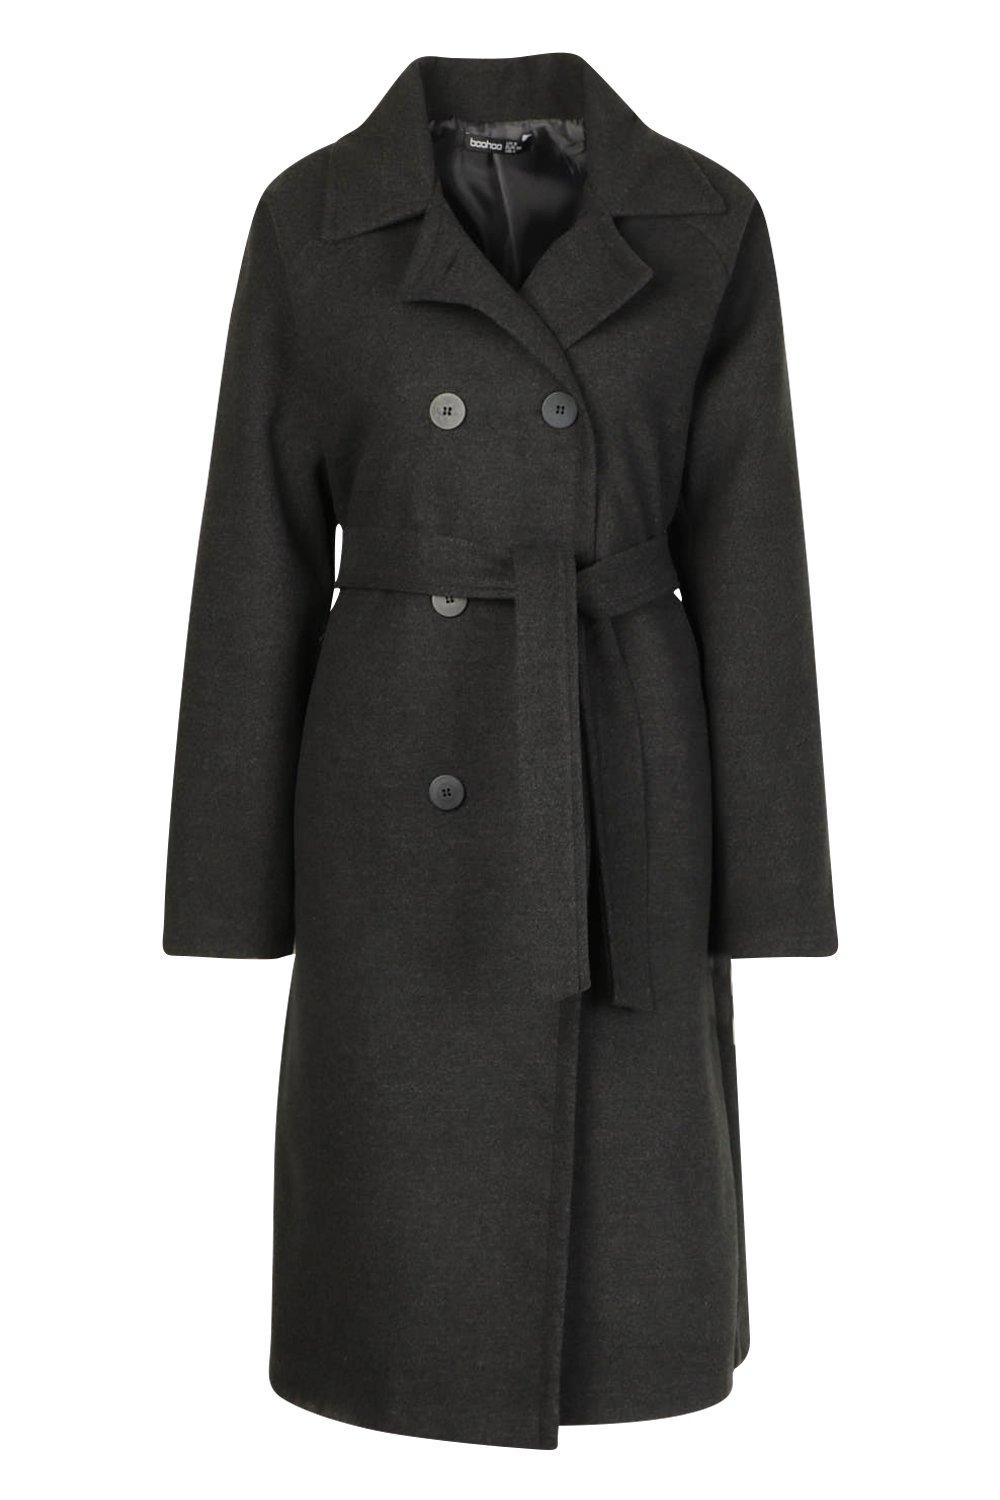 70s Jackets, Furs, Vests, Ponchos Womens Double Breasted Belted Wool Look Coat - Grey - 10 $32.00 AT vintagedancer.com